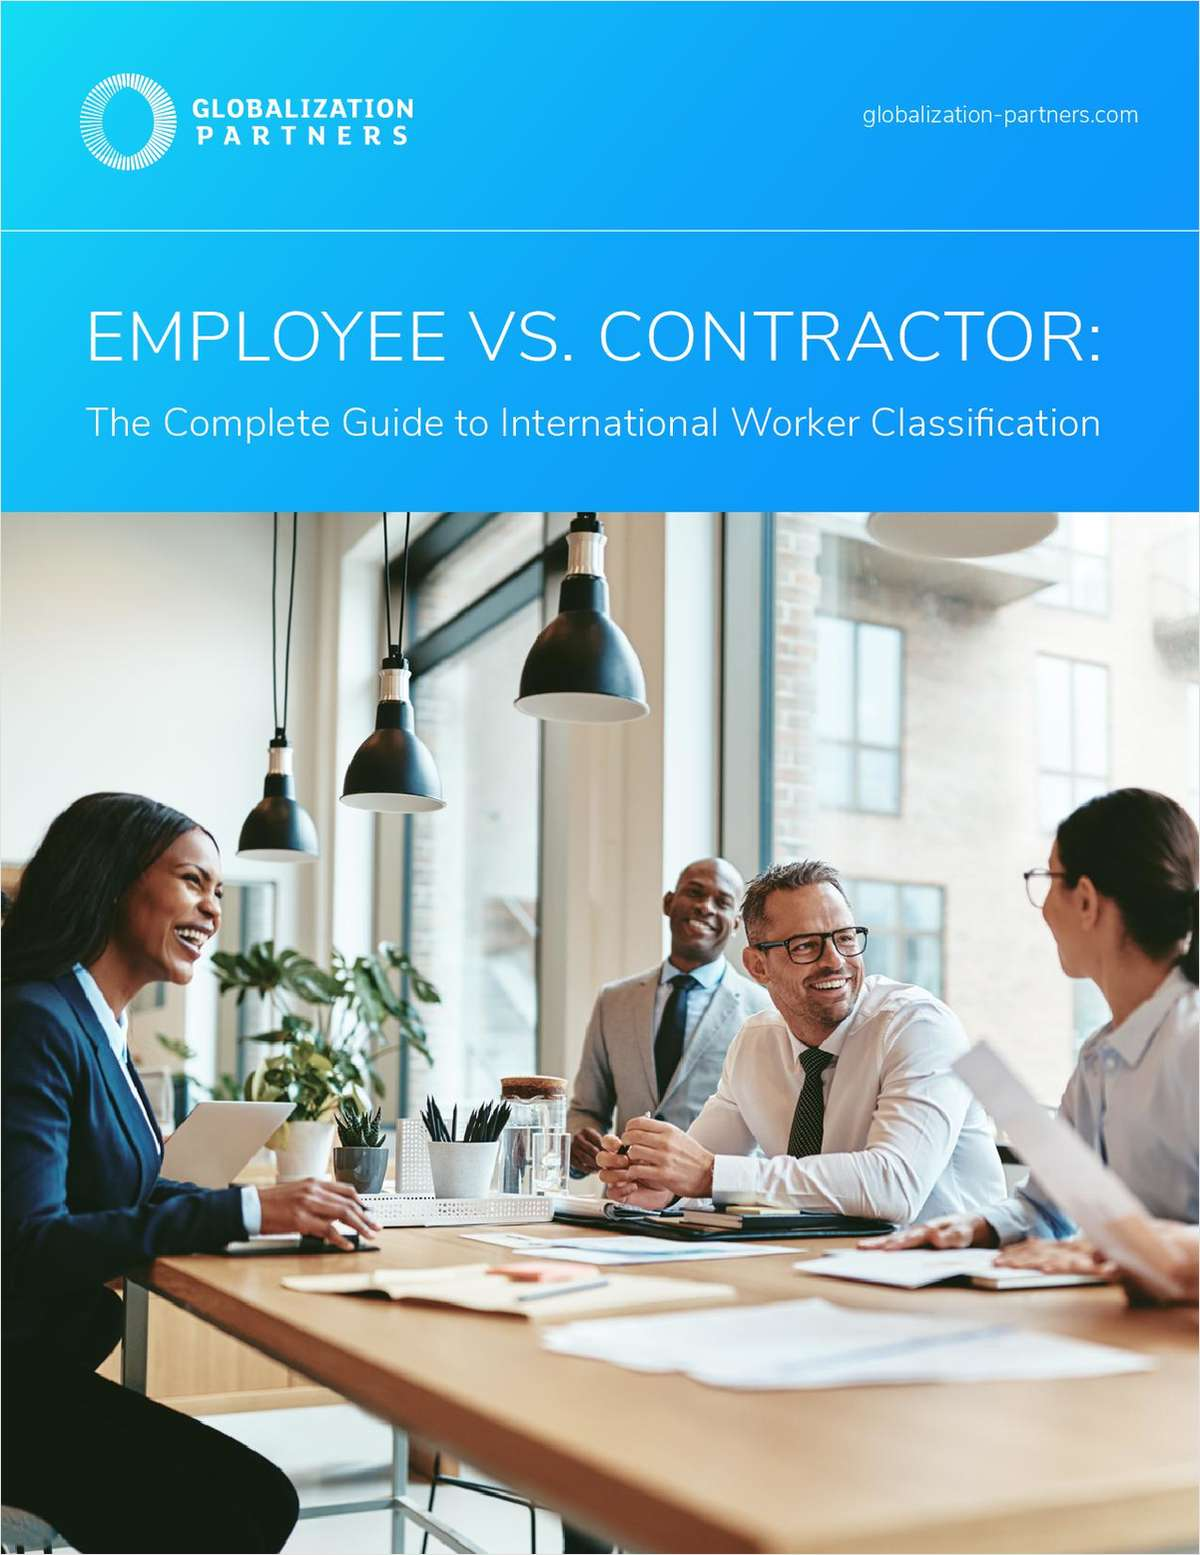 The Complete Guide to International Worker Classification